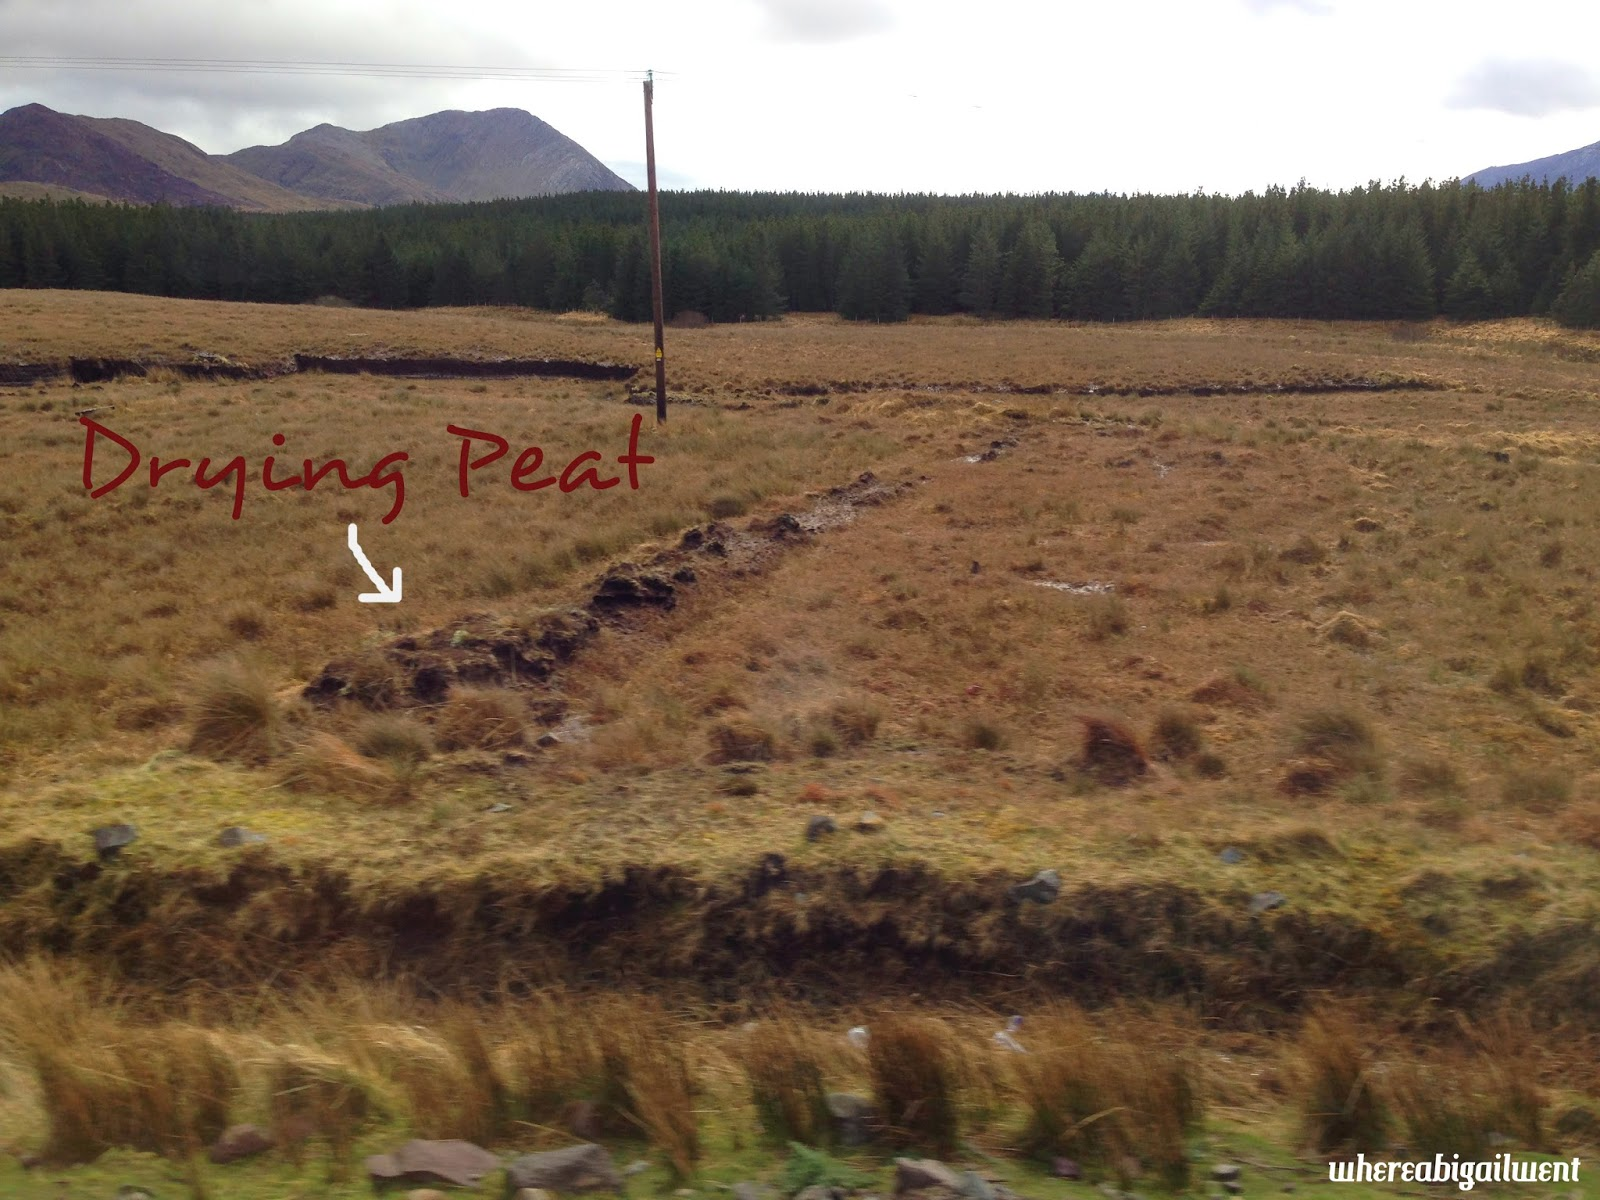 Cutting and drying peat